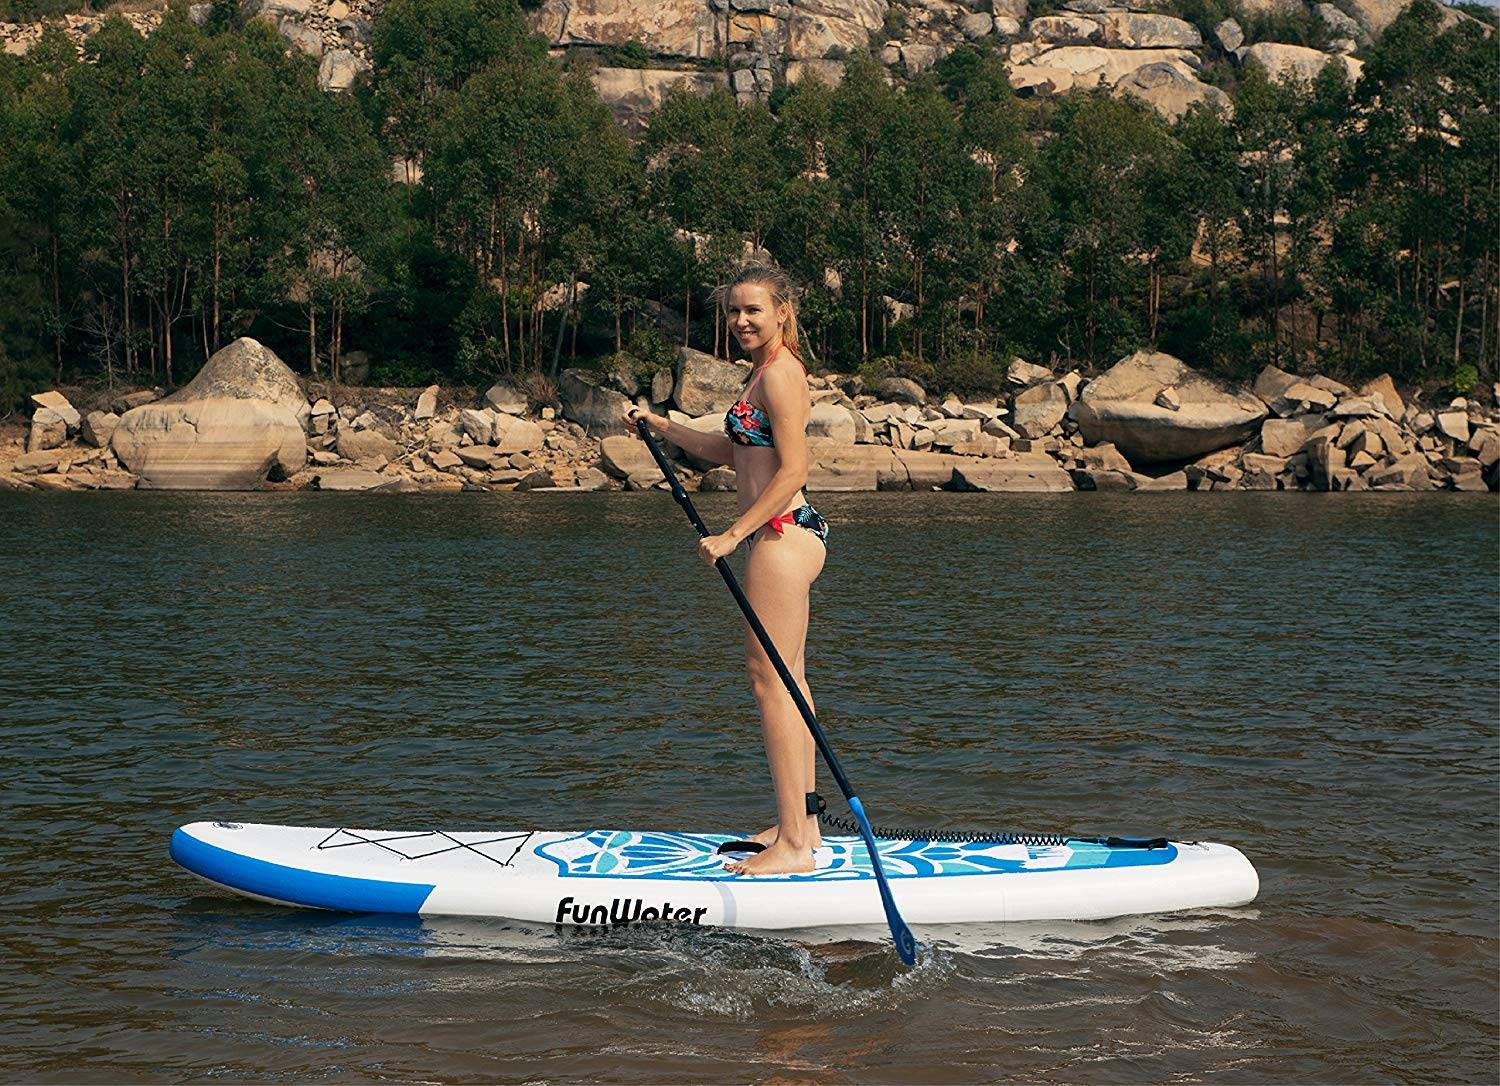 Fun Water Inflatable SUP - image Fun-Water-Inflatable-SUP on https://supboardgear.com